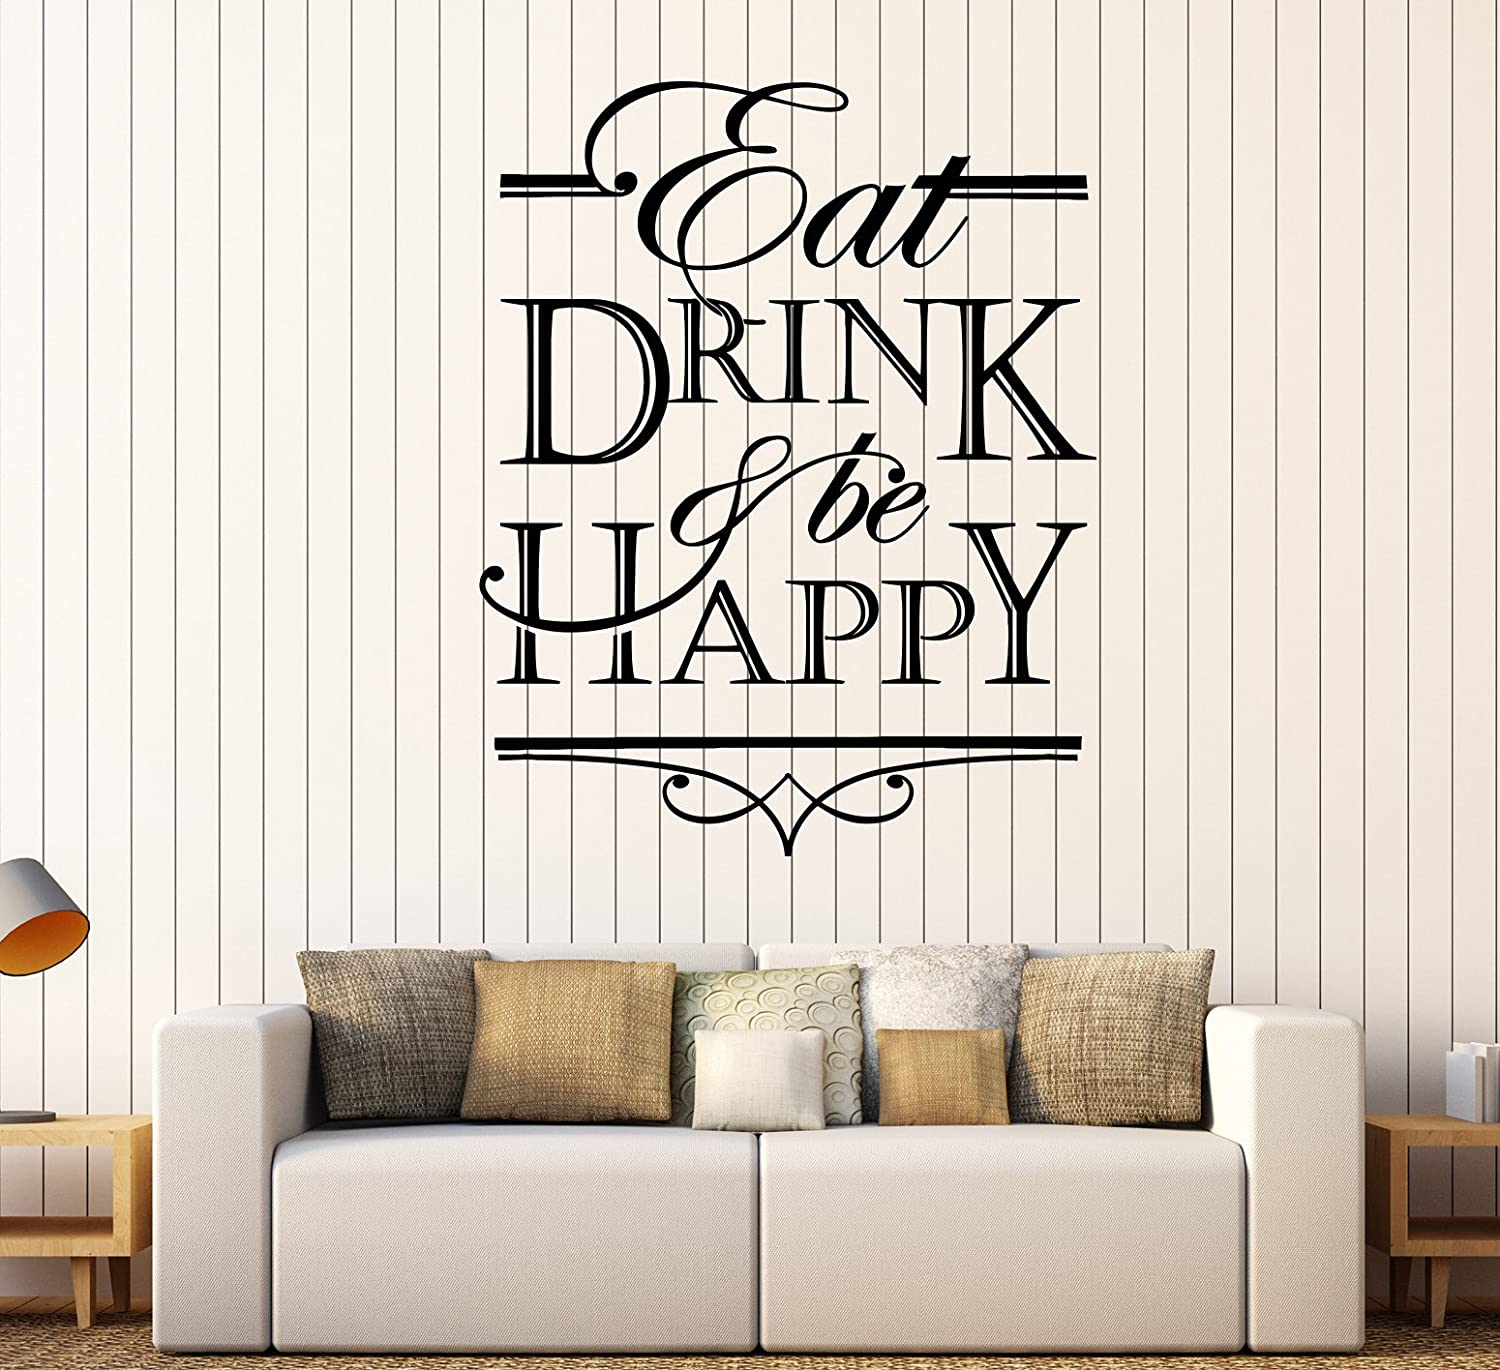 Amazon.com: Vinyl Wall Decal Quote Words Eat Drink And Be ...